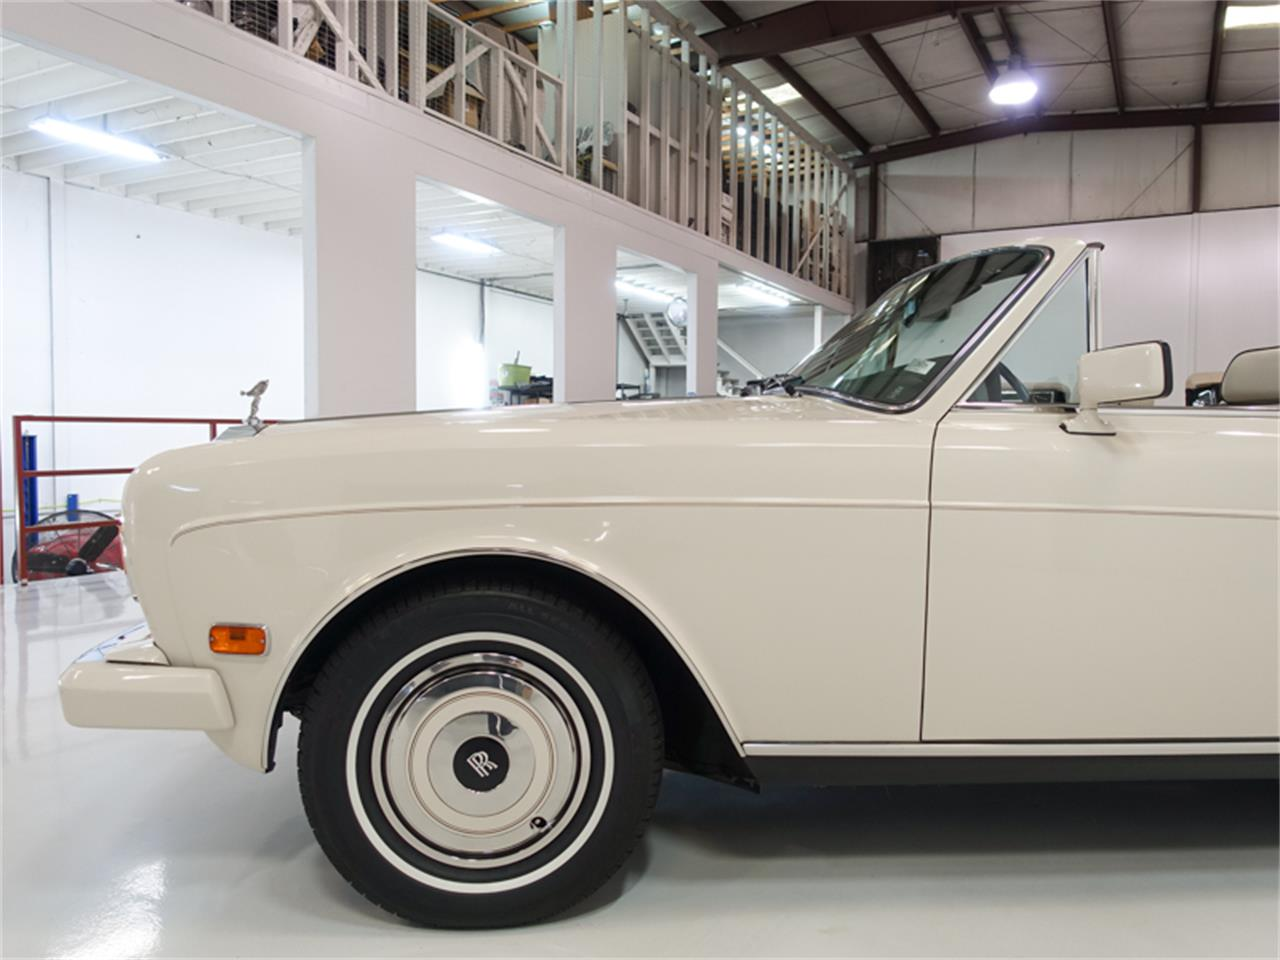 1987 Rolls-Royce Corniche II (CC-1292828) for sale in Saint Louis, Missouri